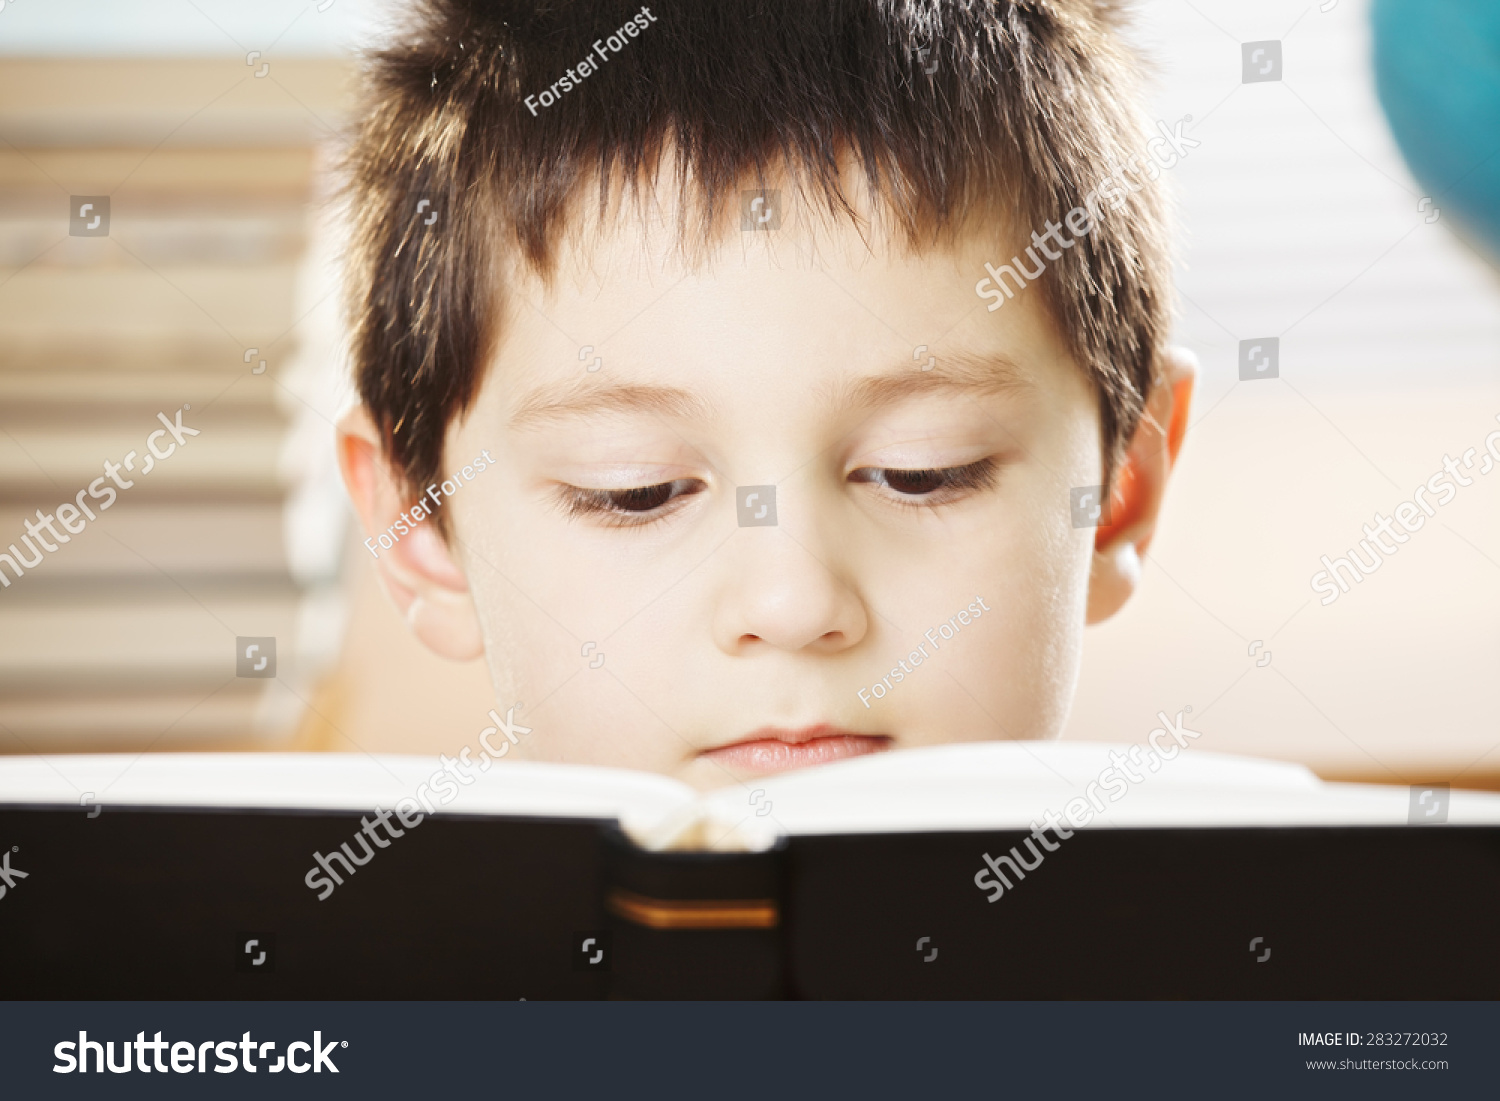 Black Boy Book Cover : Serious caucasian boy reading big book with black cover